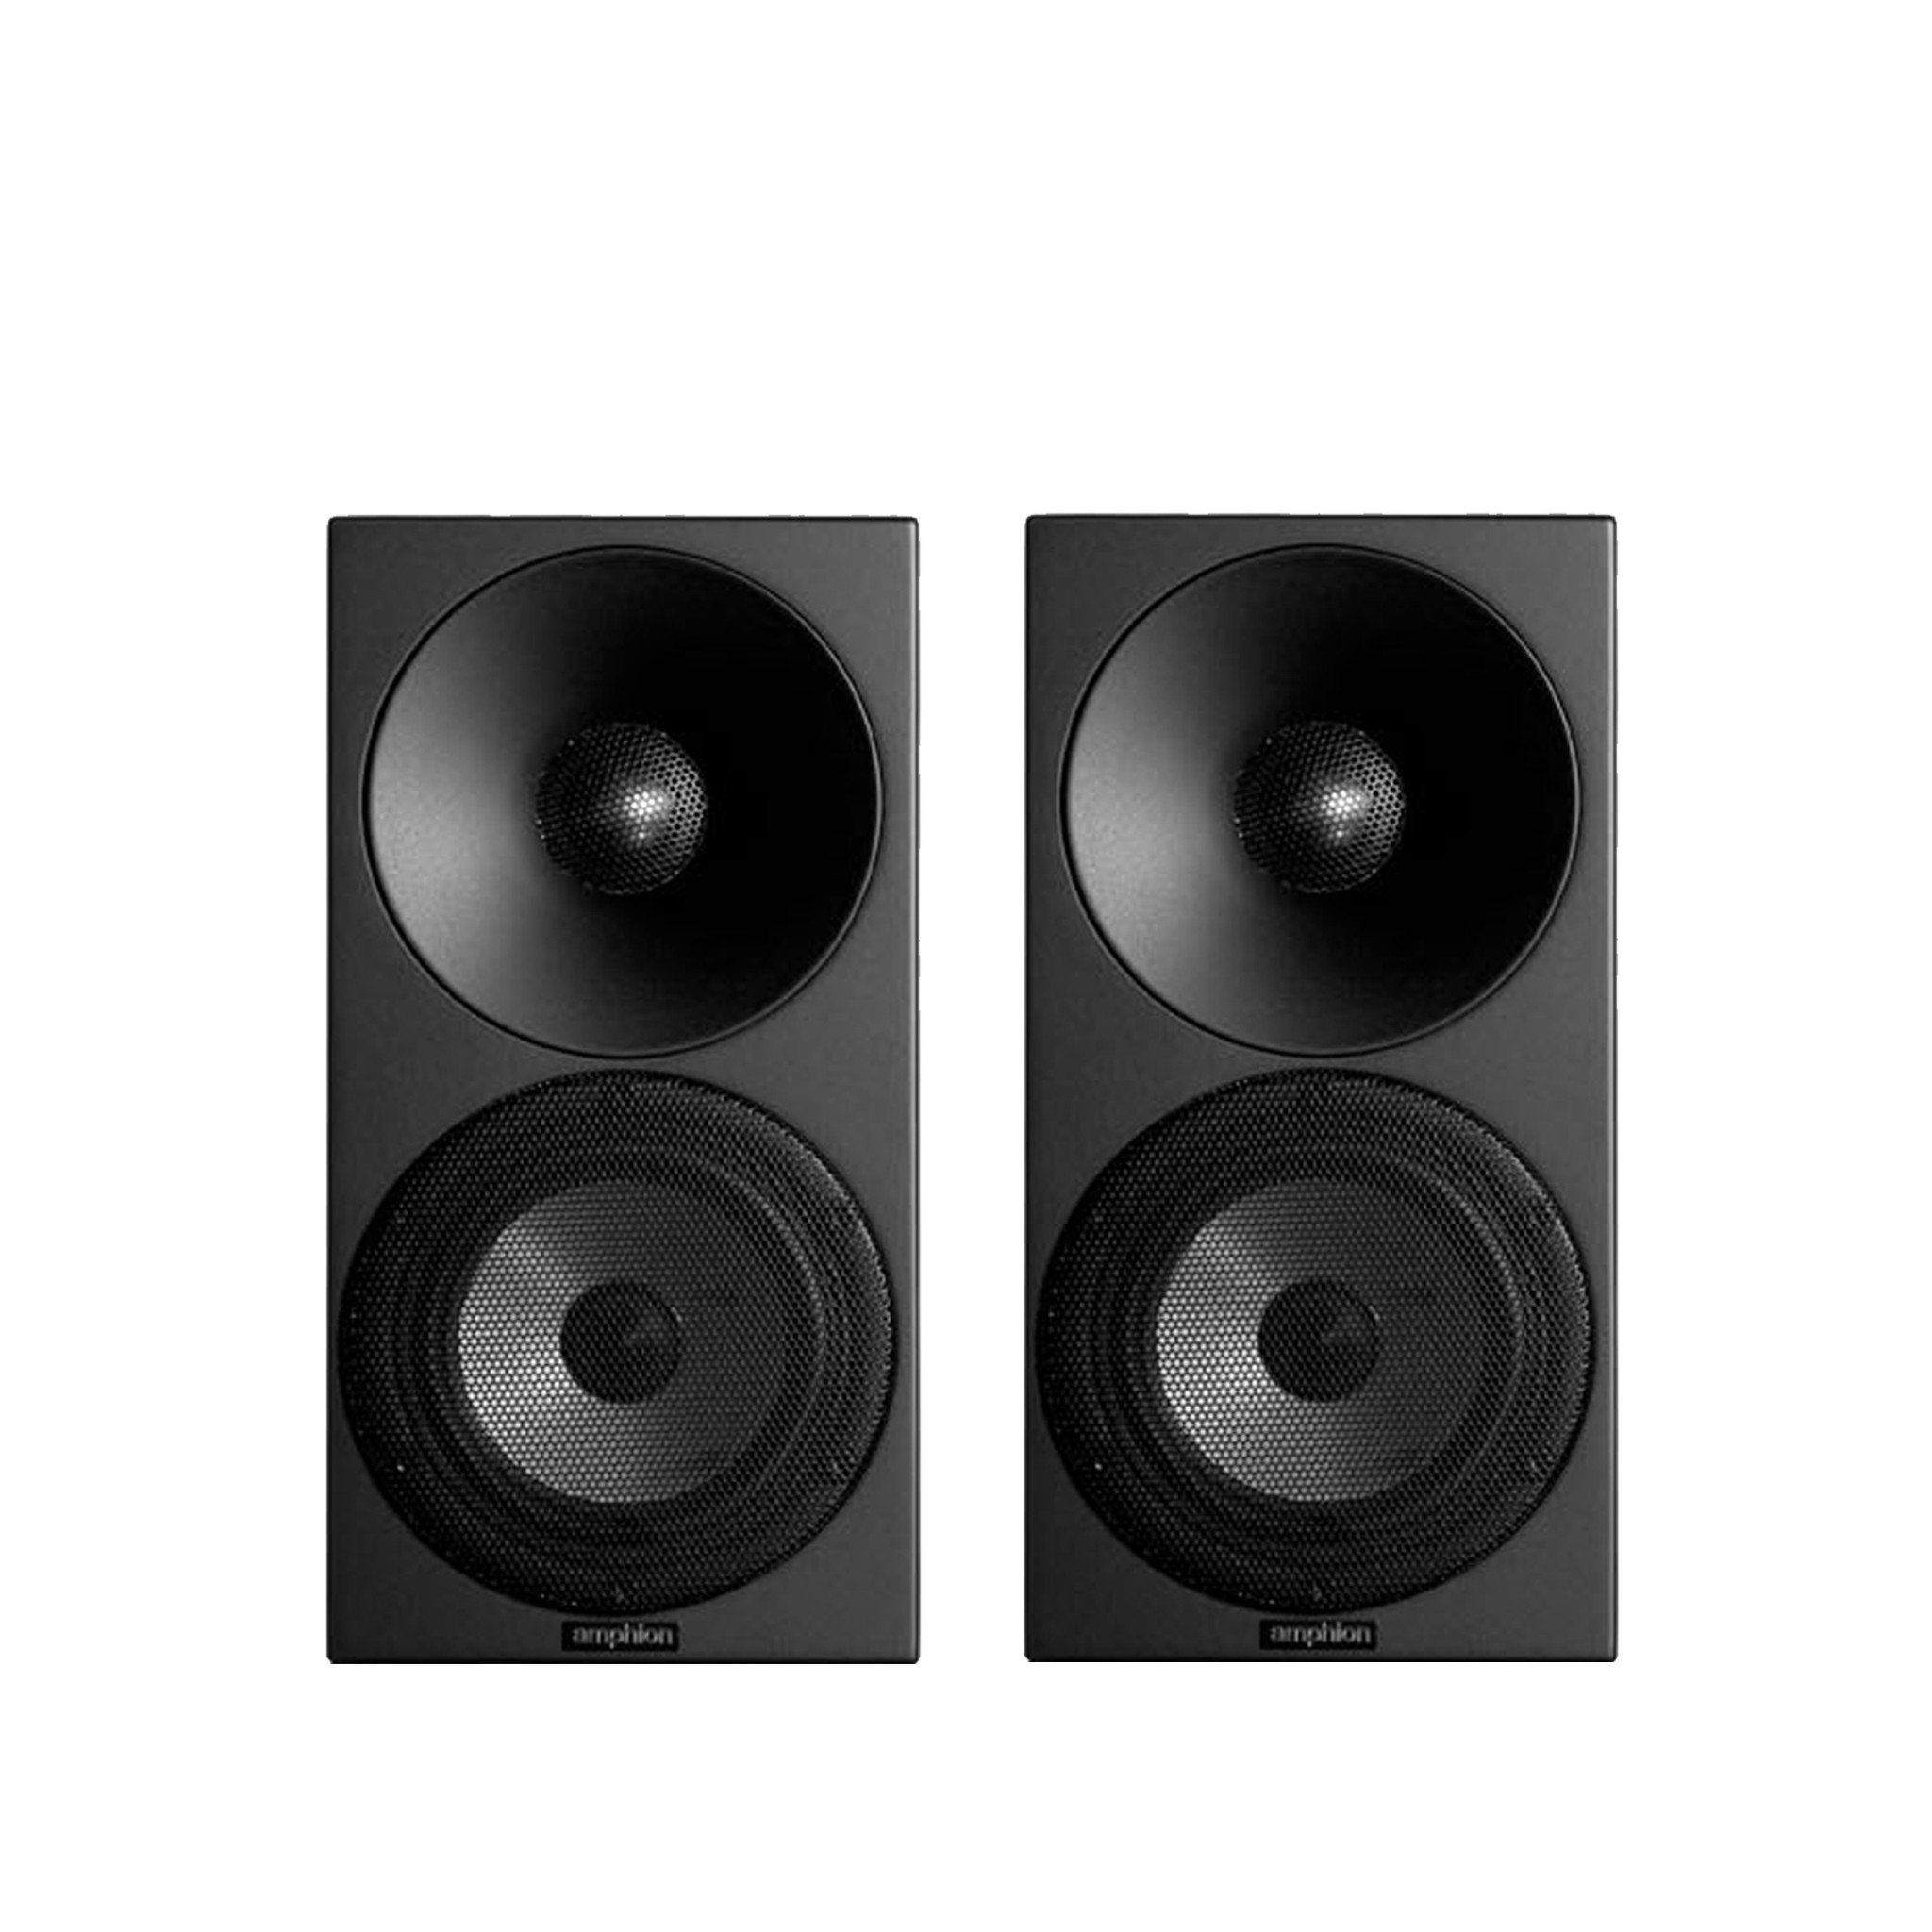 amphion loudspeaker review 2017 2018 2019 ford price